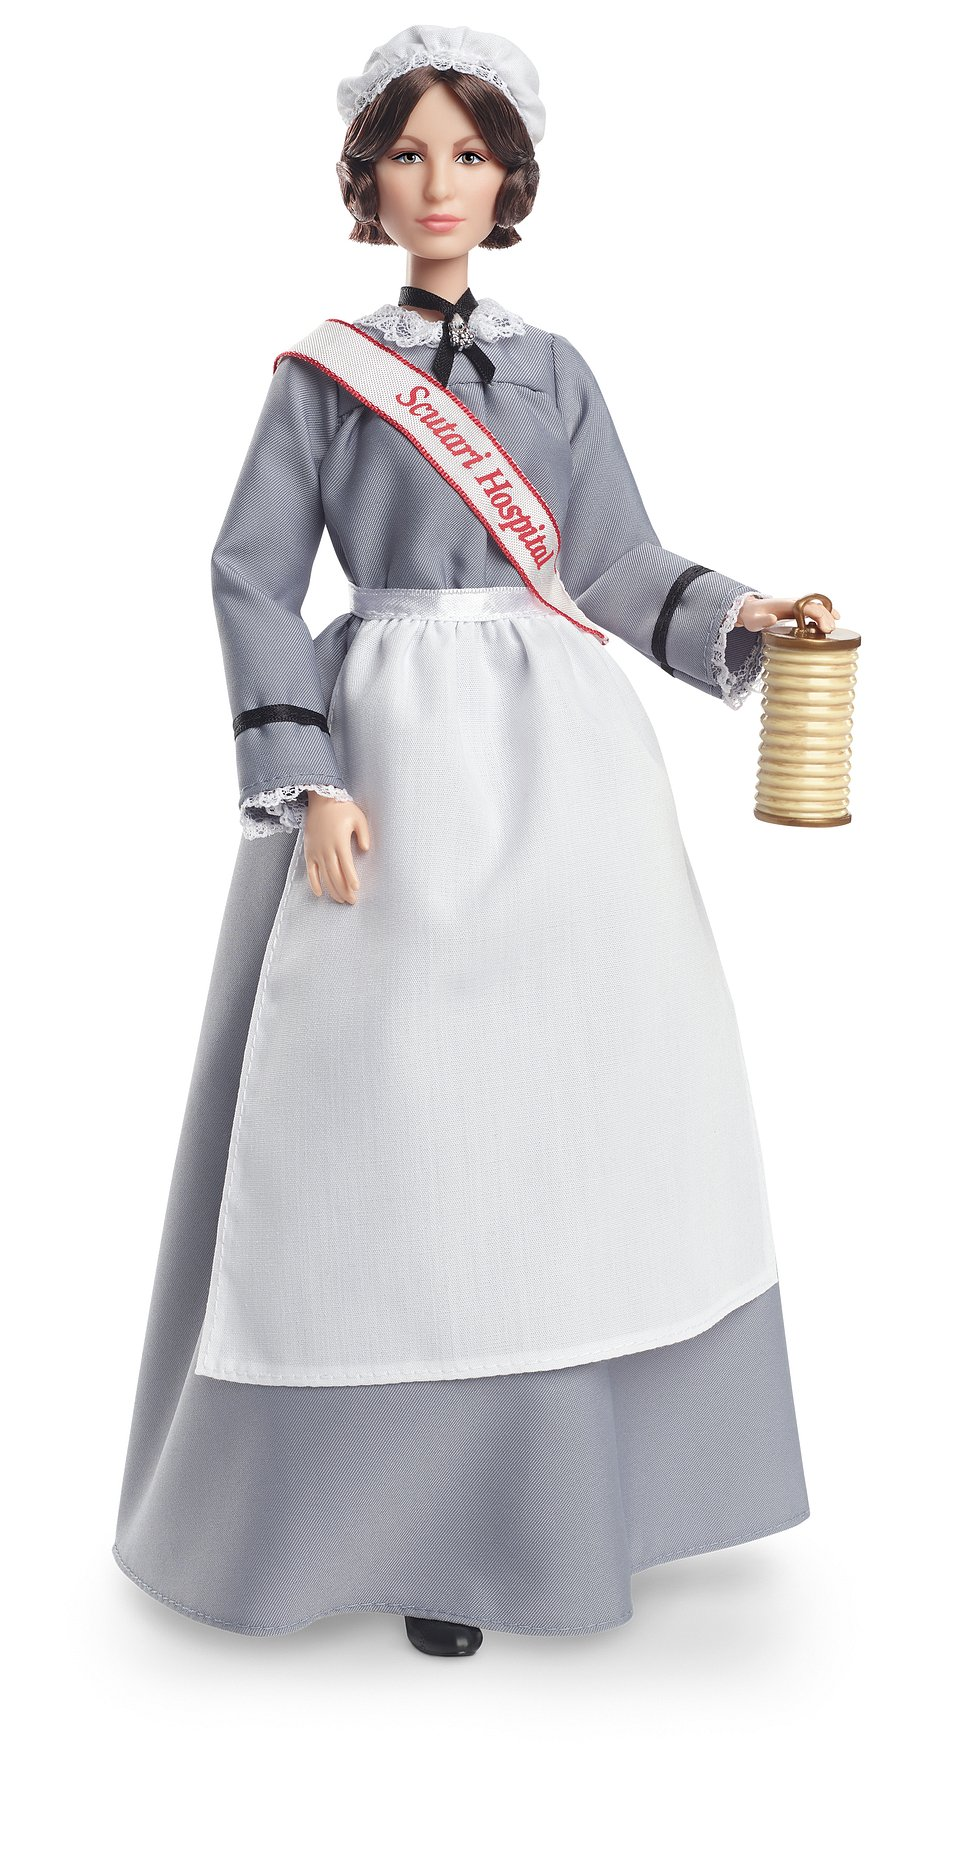 Barbie Inspiring Women Florence Nightingale (GHT87).jpg